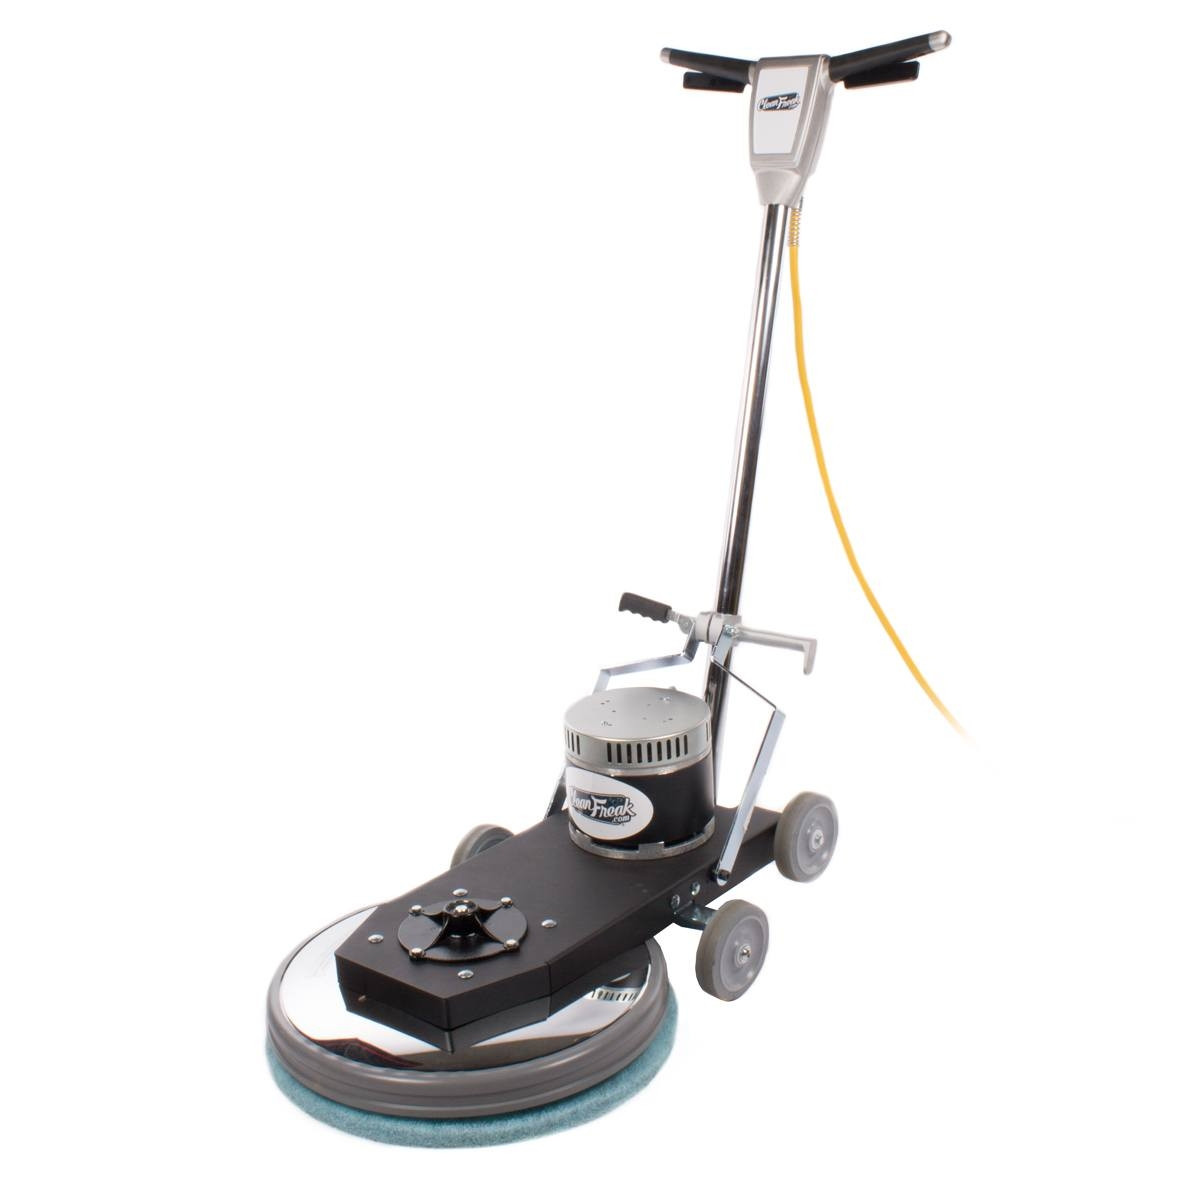 CleanFreak® 20 inch High Speed Floor Burnisher Machine